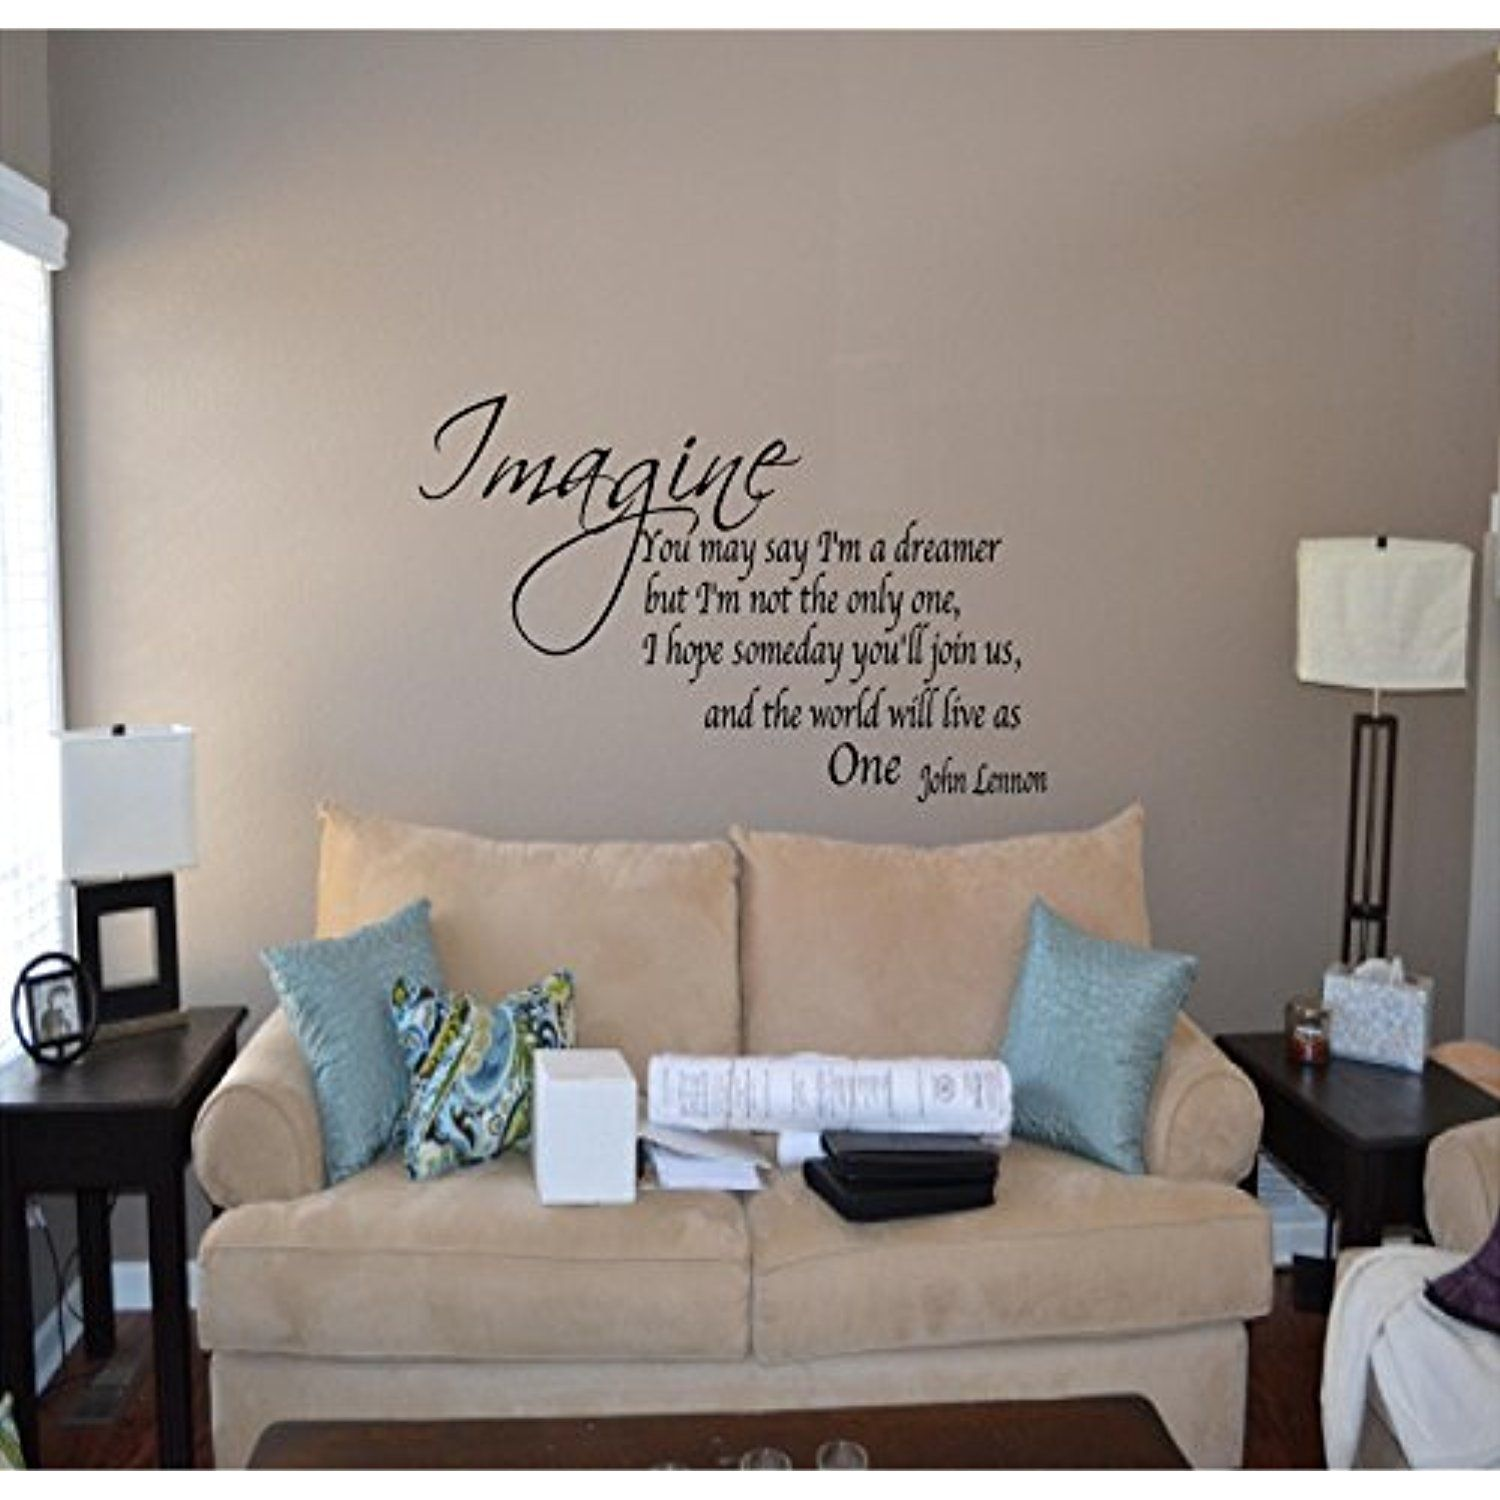 Quote It Imagine Removable Vinyl Wall Quotes John Lennon Wall Quotes Inspirational Quot Living Room Wall Decor Quotes Vinyl Wall Quotes Living Room Quotes #wall #art #quotes #for #living #room